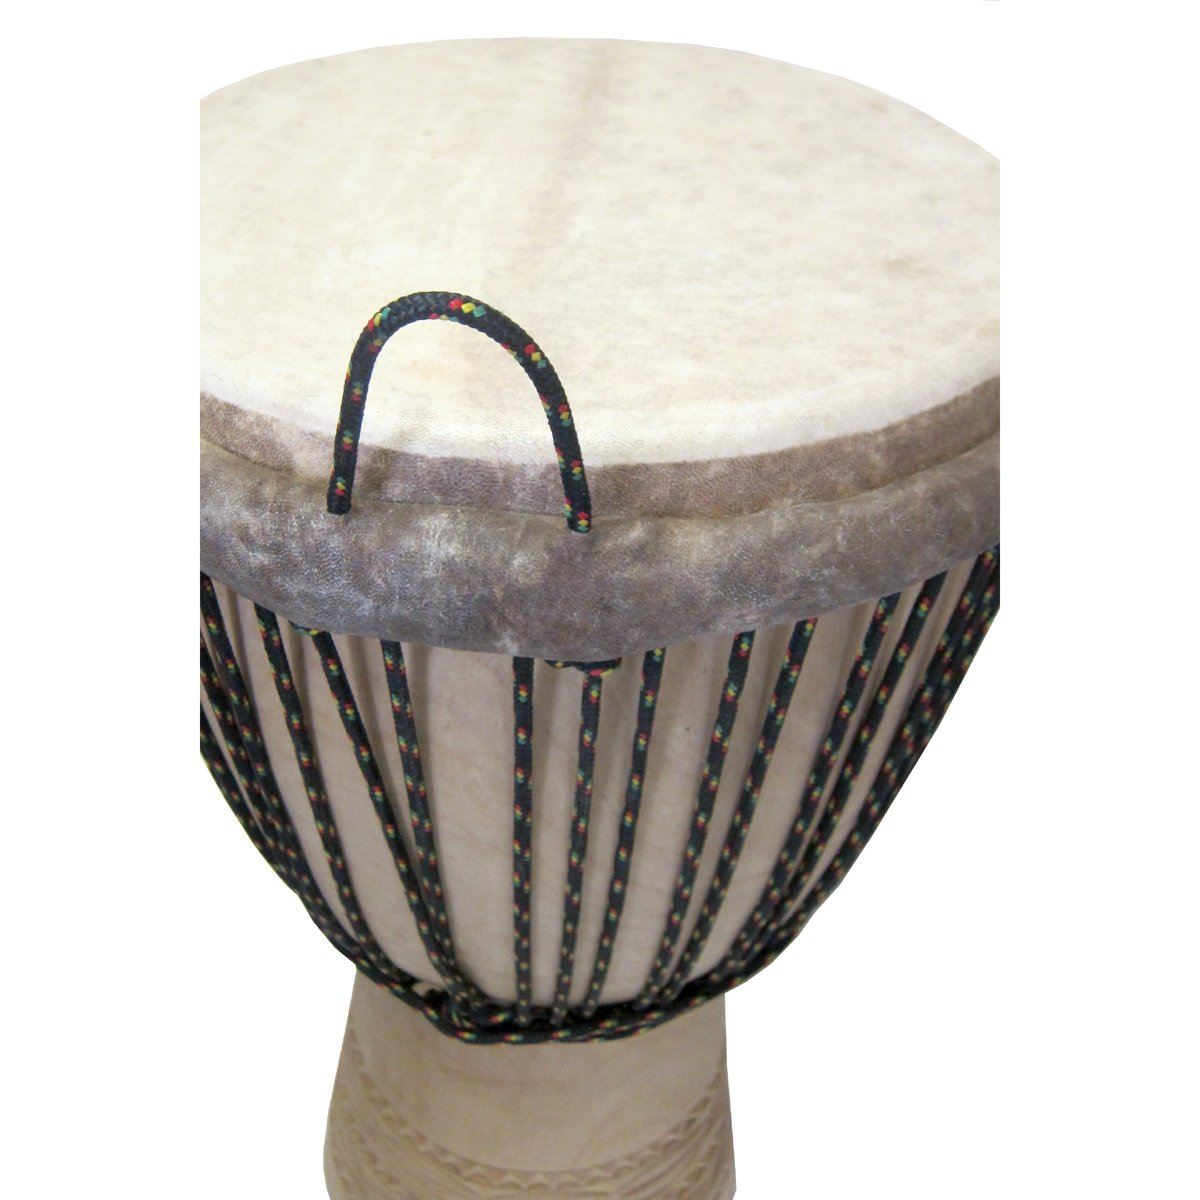 Paragon Heartwood Djembe Drum From Mali - 13x24 (Melina Wood) - Professional grade, Custom Tuned, New by Africa Heartwood Project